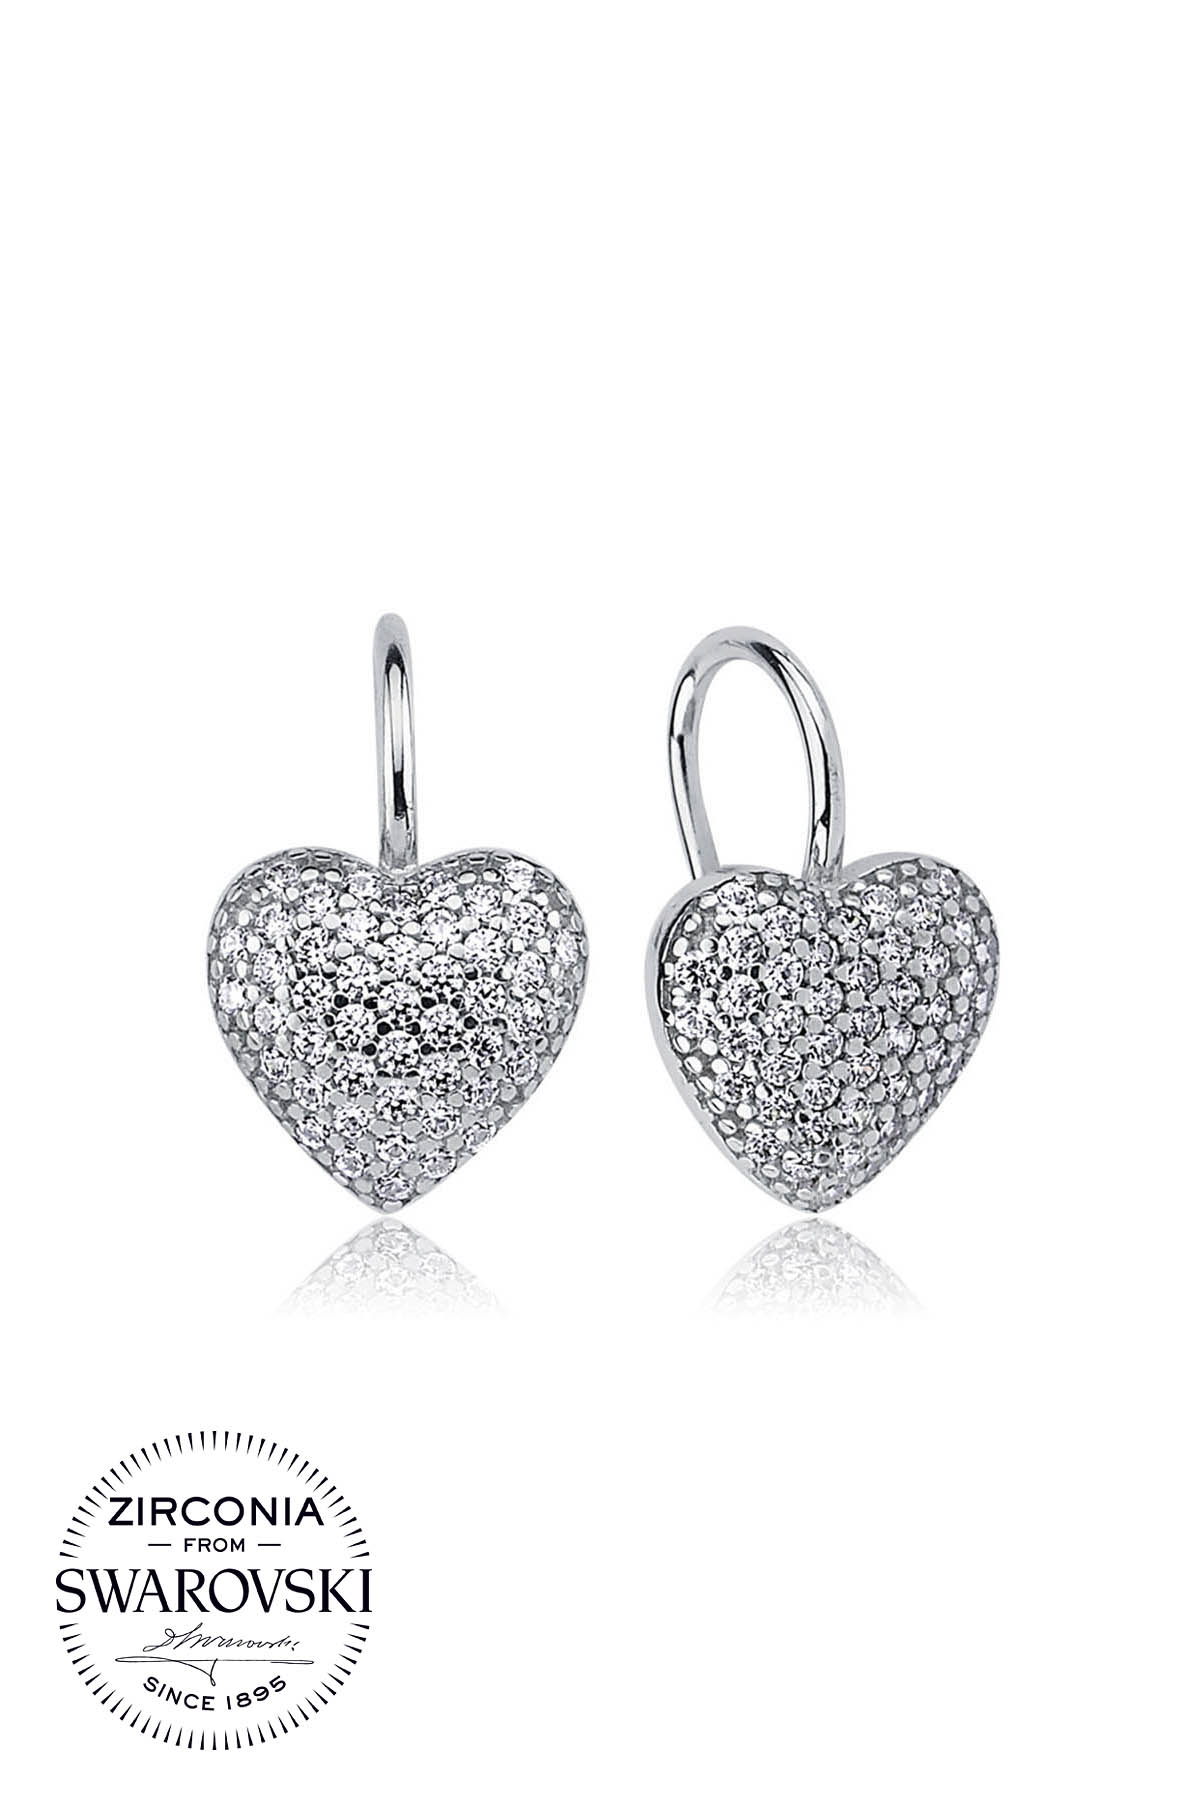 Details about  /Heart Zirconia Earrings White 750er White Gold 18K Gold Plated Silver O2812